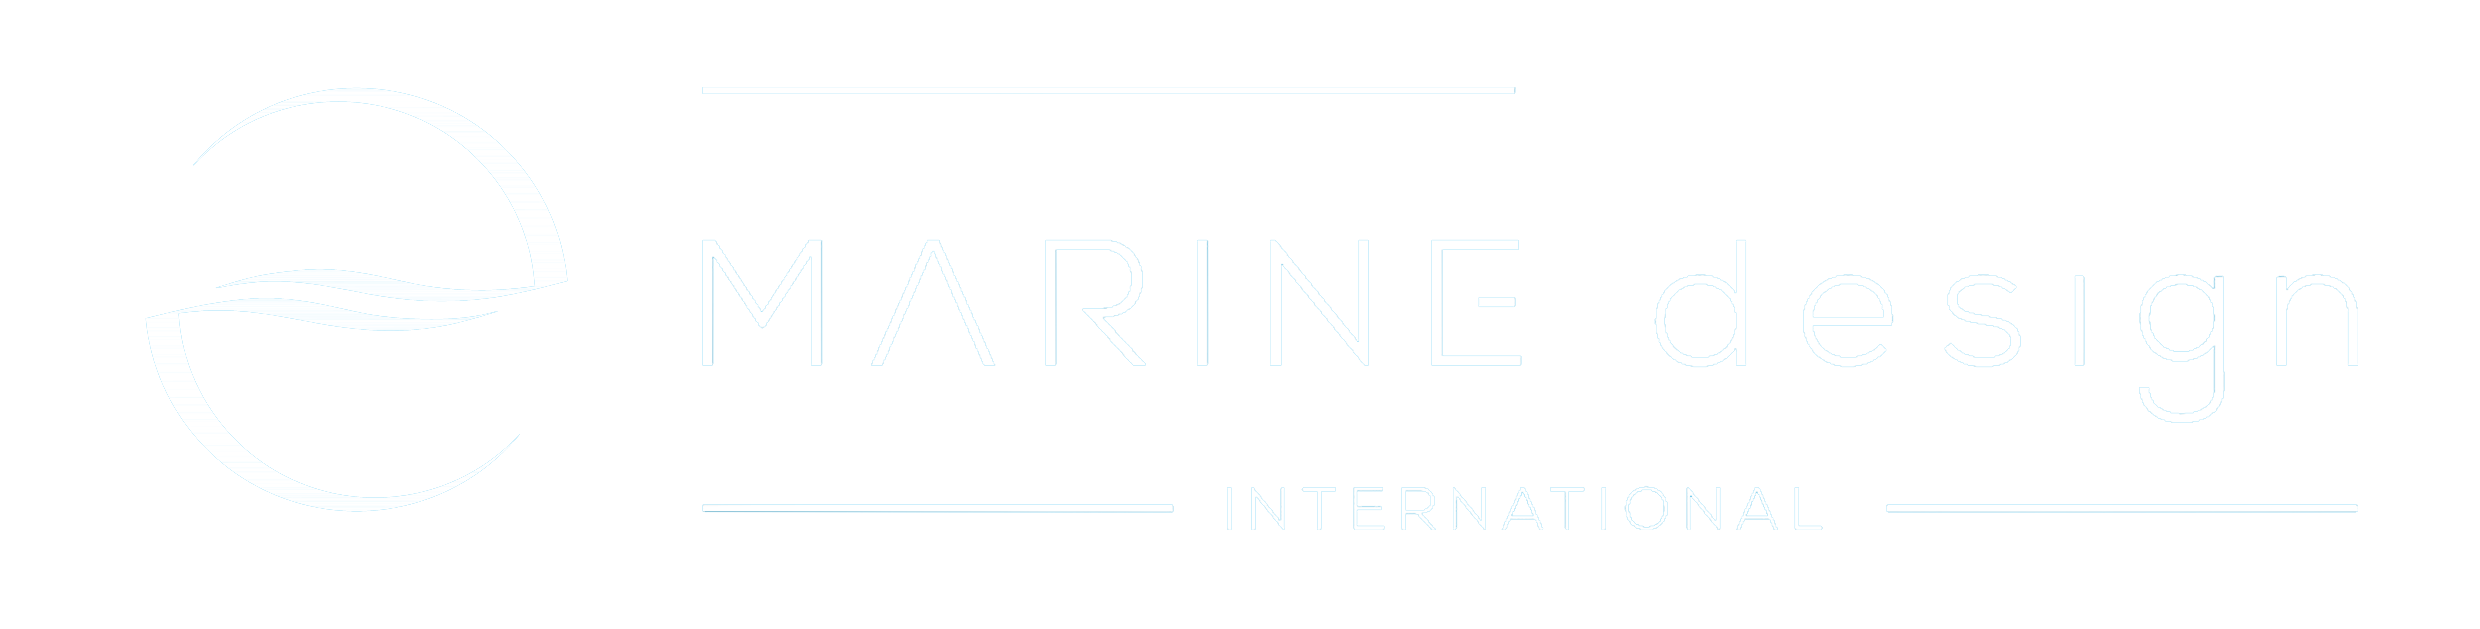 Marine Design International